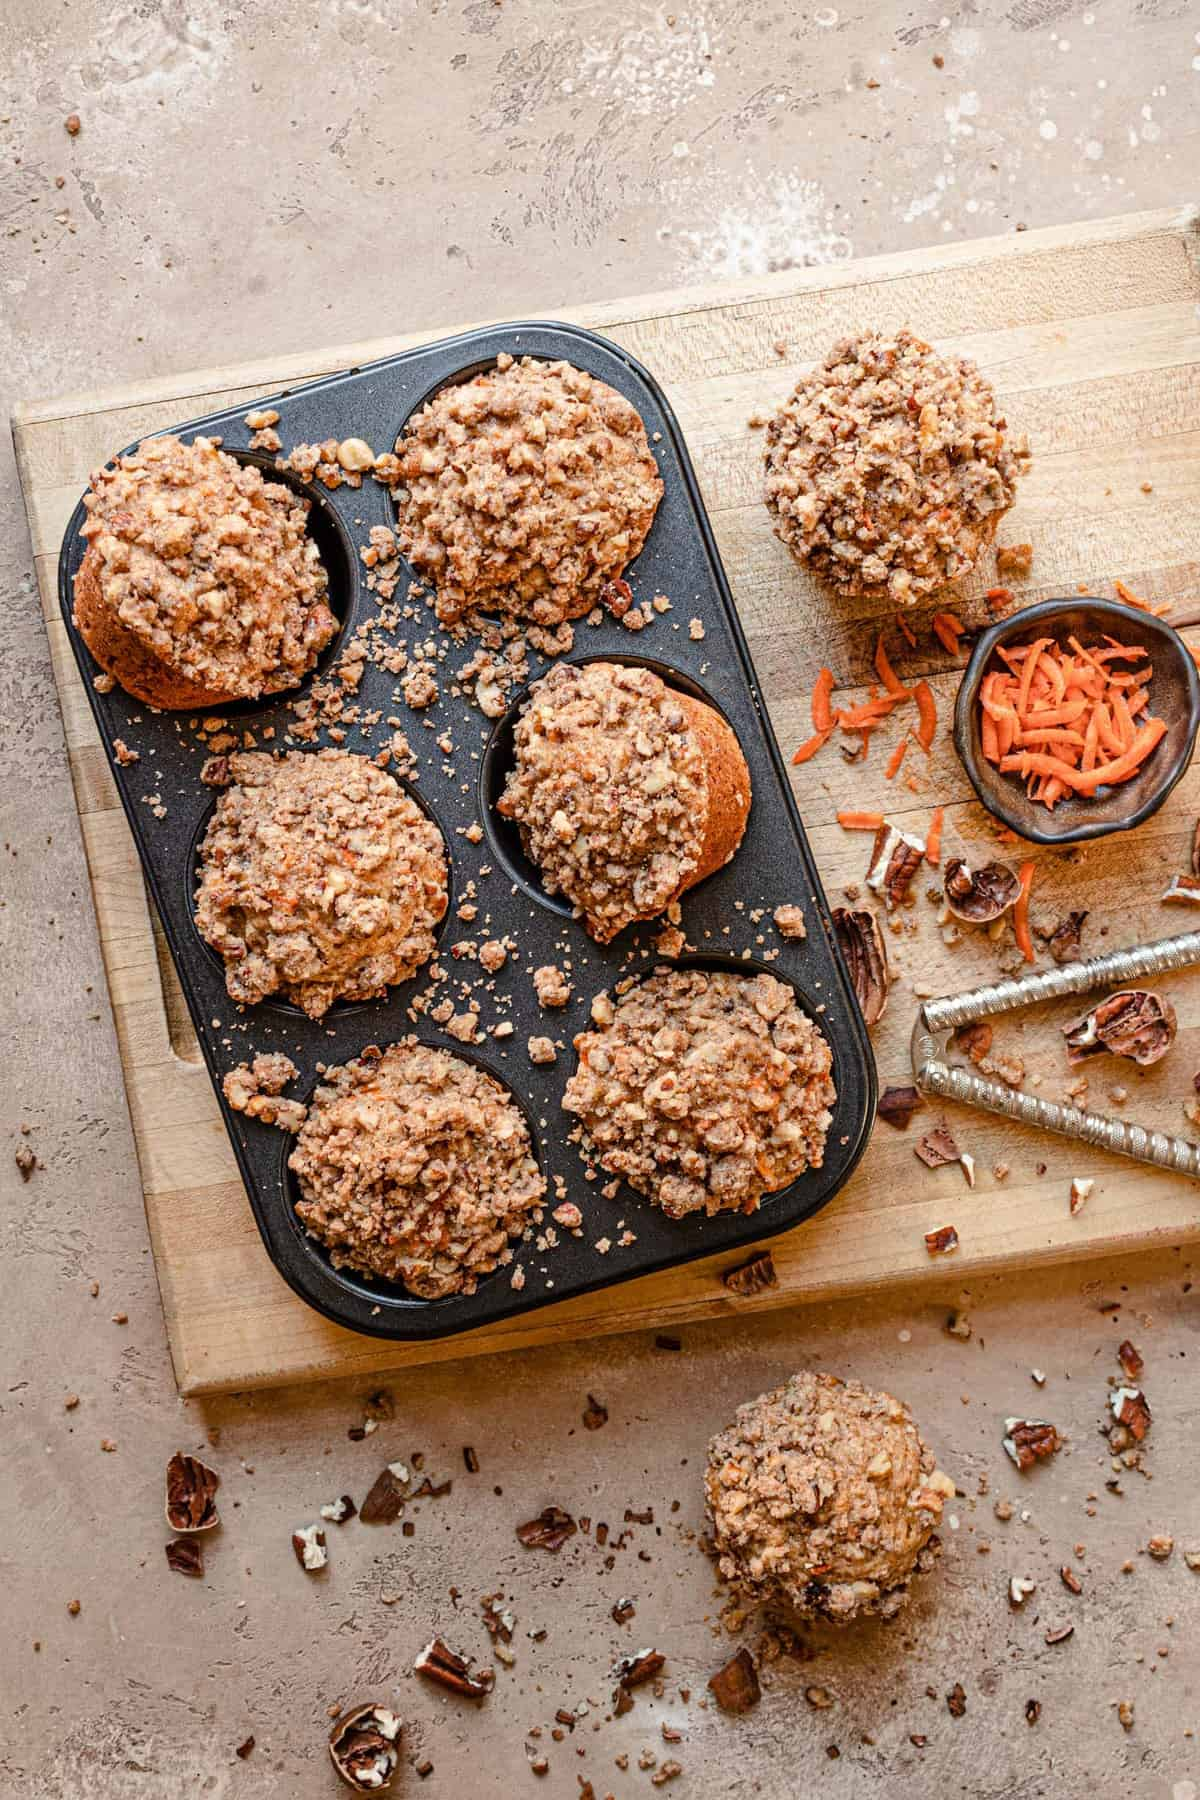 Carrot muffin with nut streusel recipe.